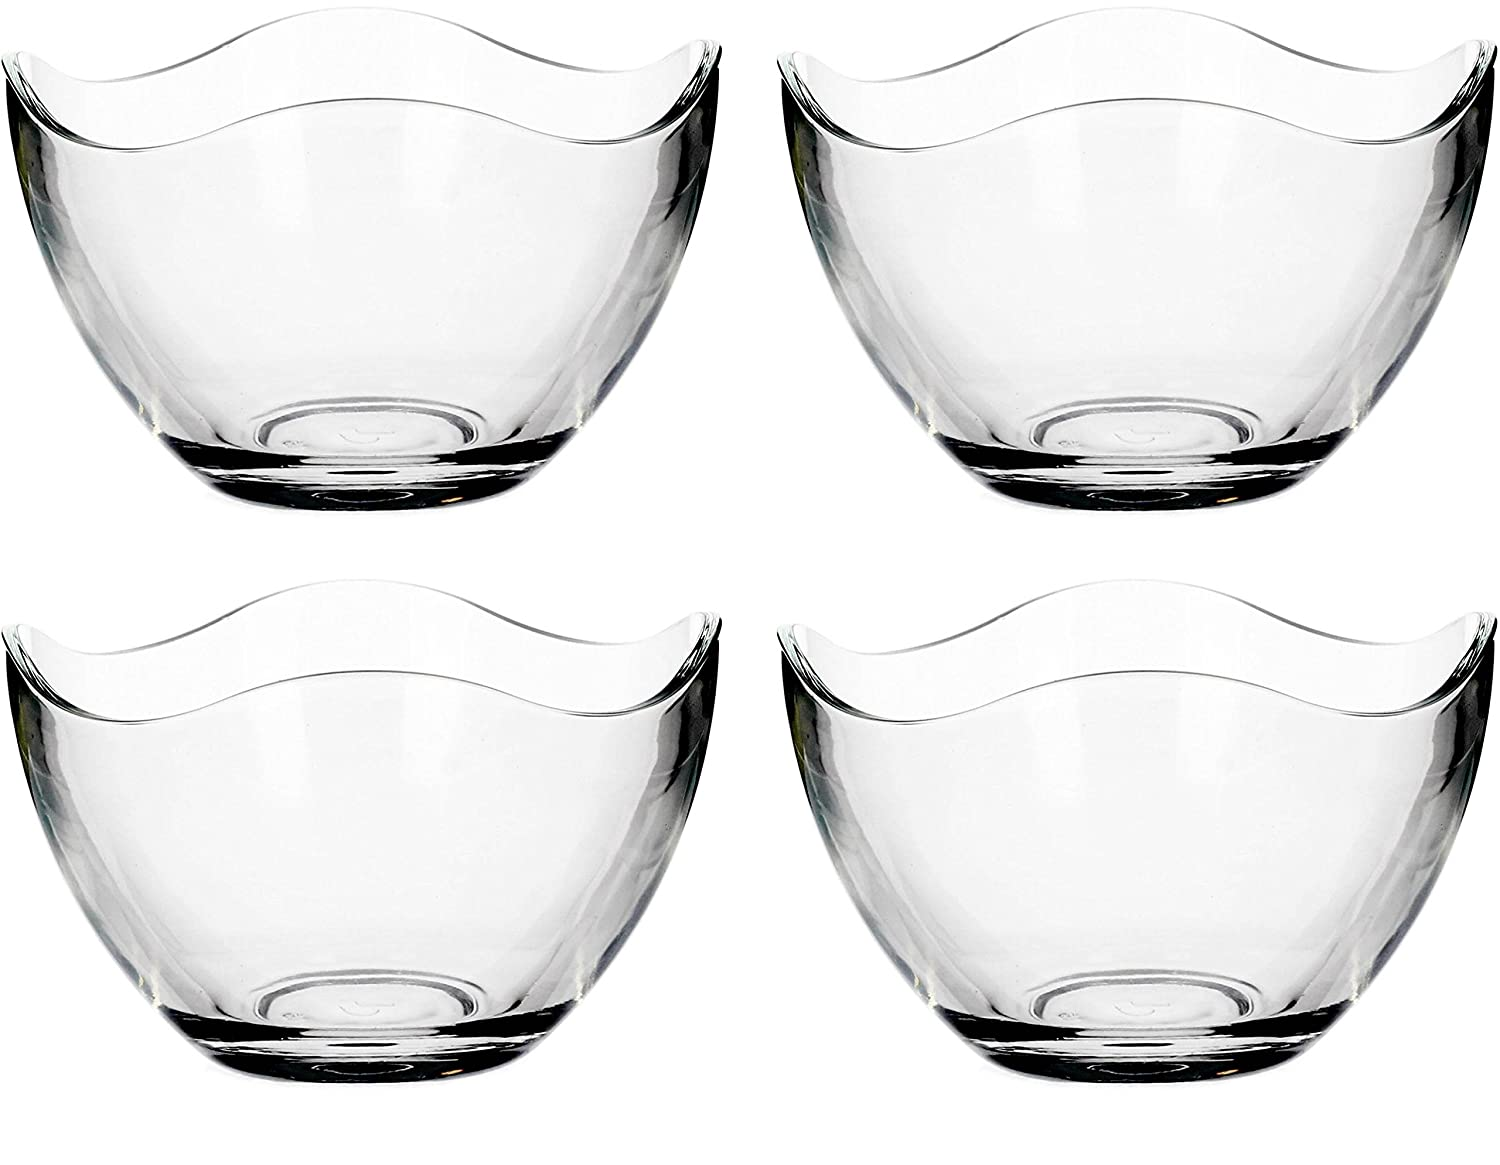 Circleware 55644 Limited Edition Glassware Serveware Fruit, Dessert and Food Serving Dish Gala Glass Salad Bowls, Set of 4, 5.25